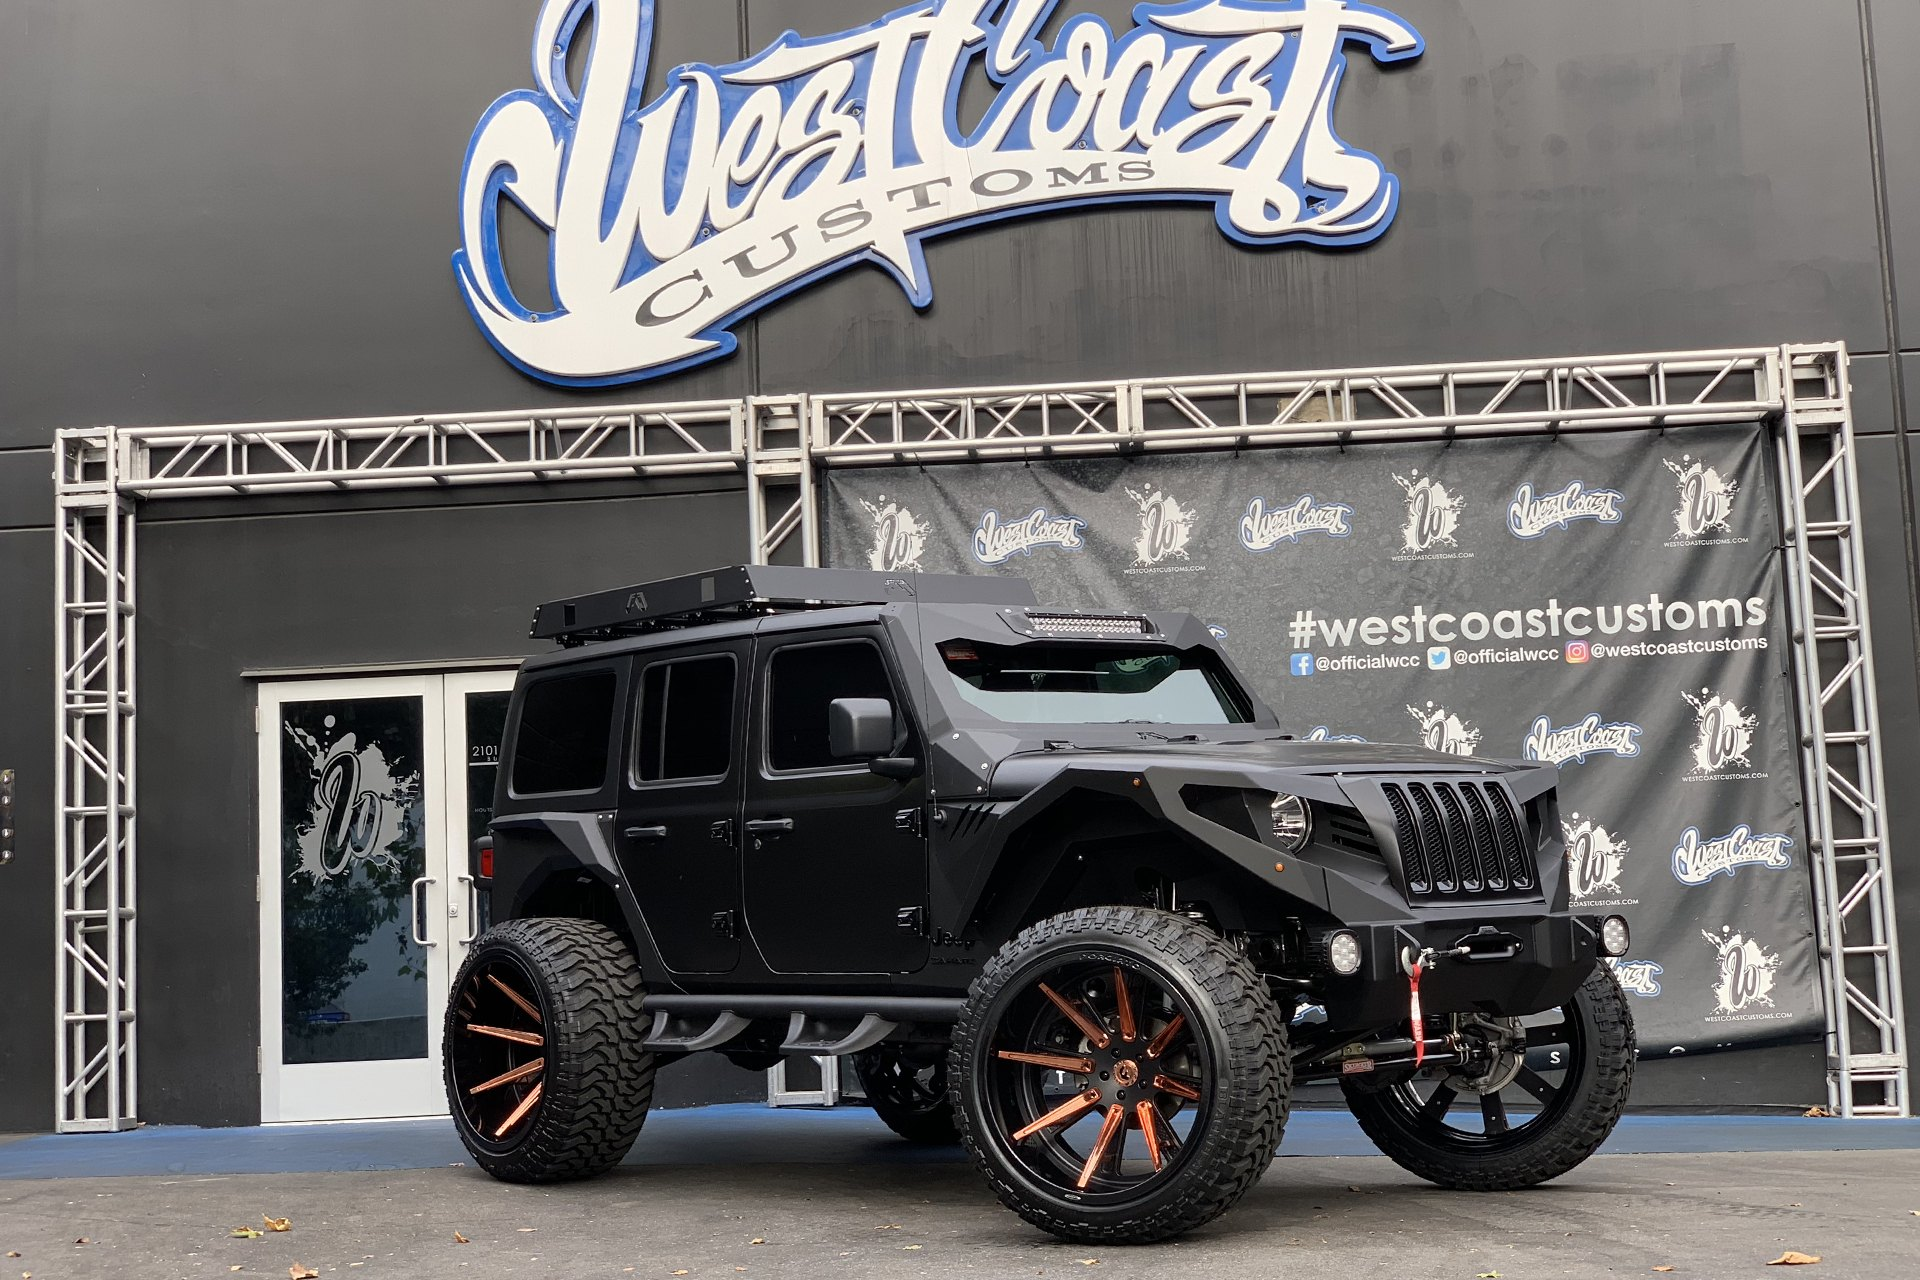 2008 Jeep Wrangler Unlimited Custom